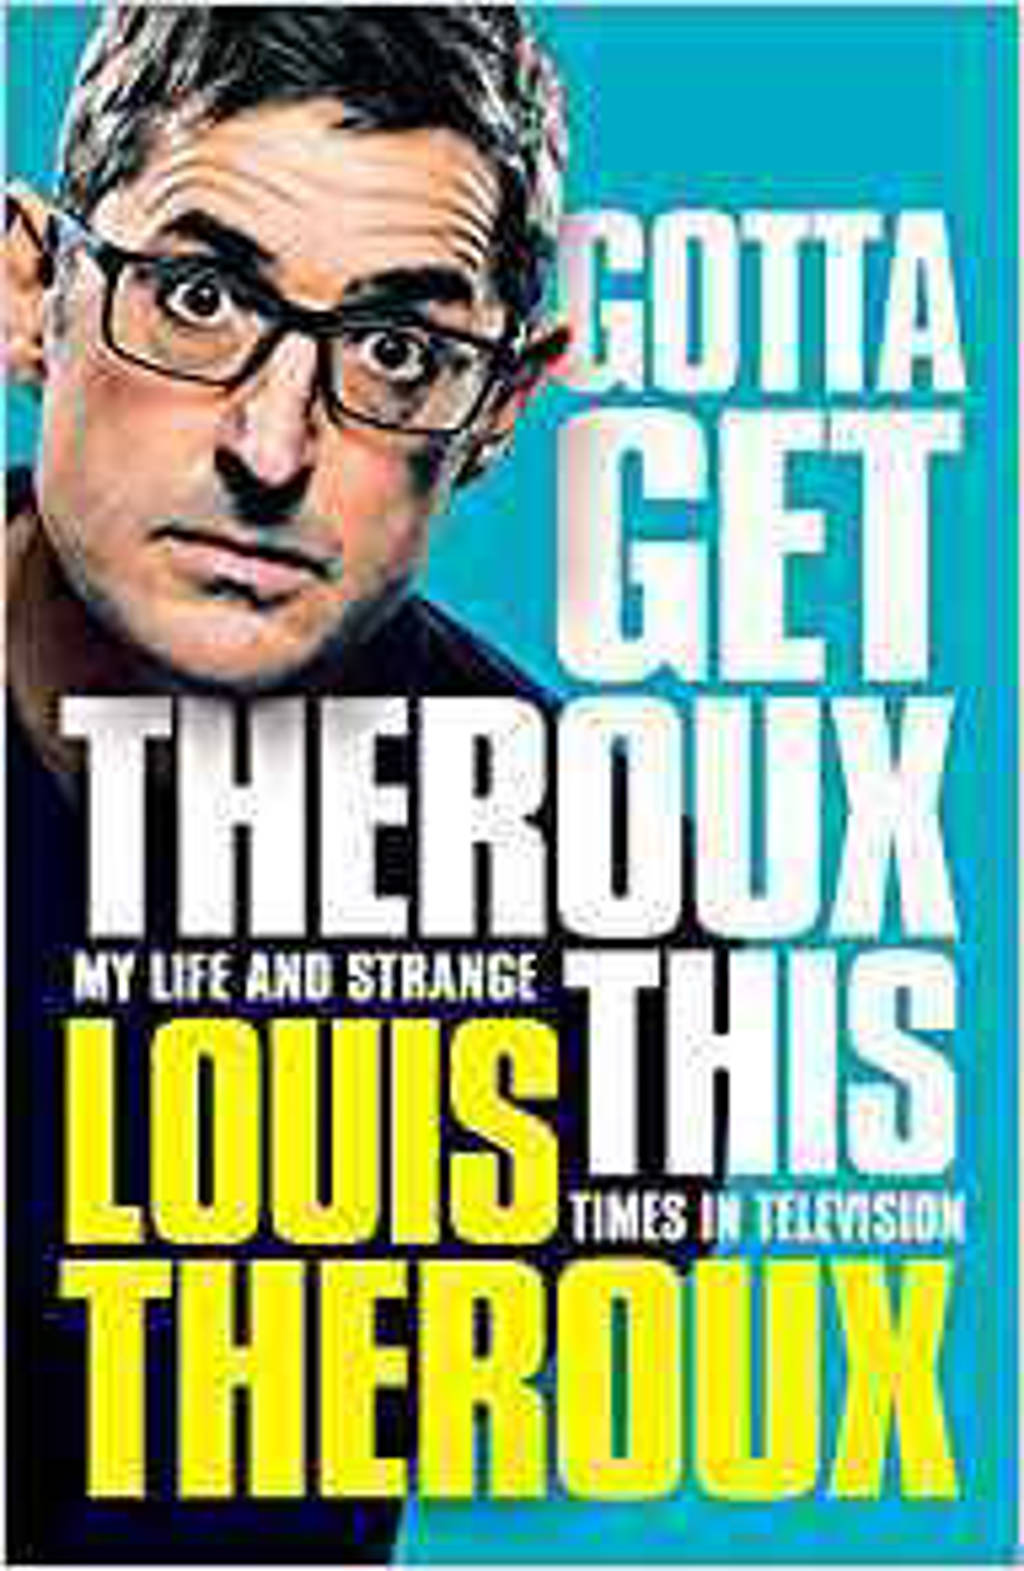 Gotta Get Theroux This: My life and strange times in television. - Theroux, Louis